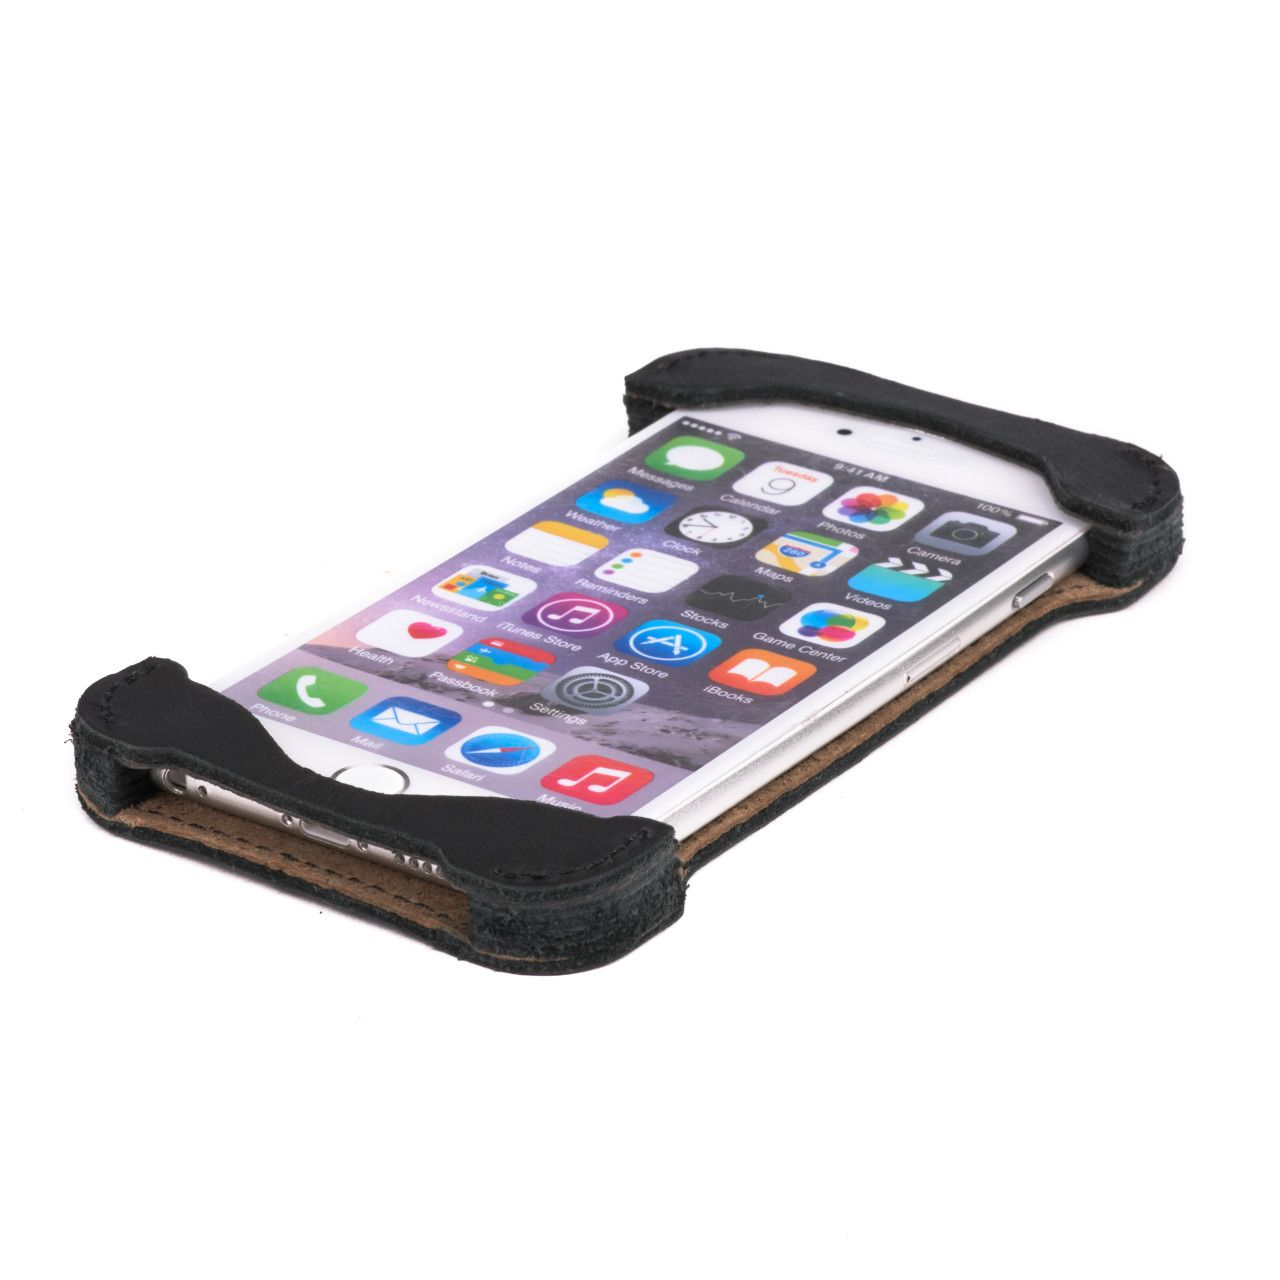 Iphone in iphone 6 leather case large in black leather